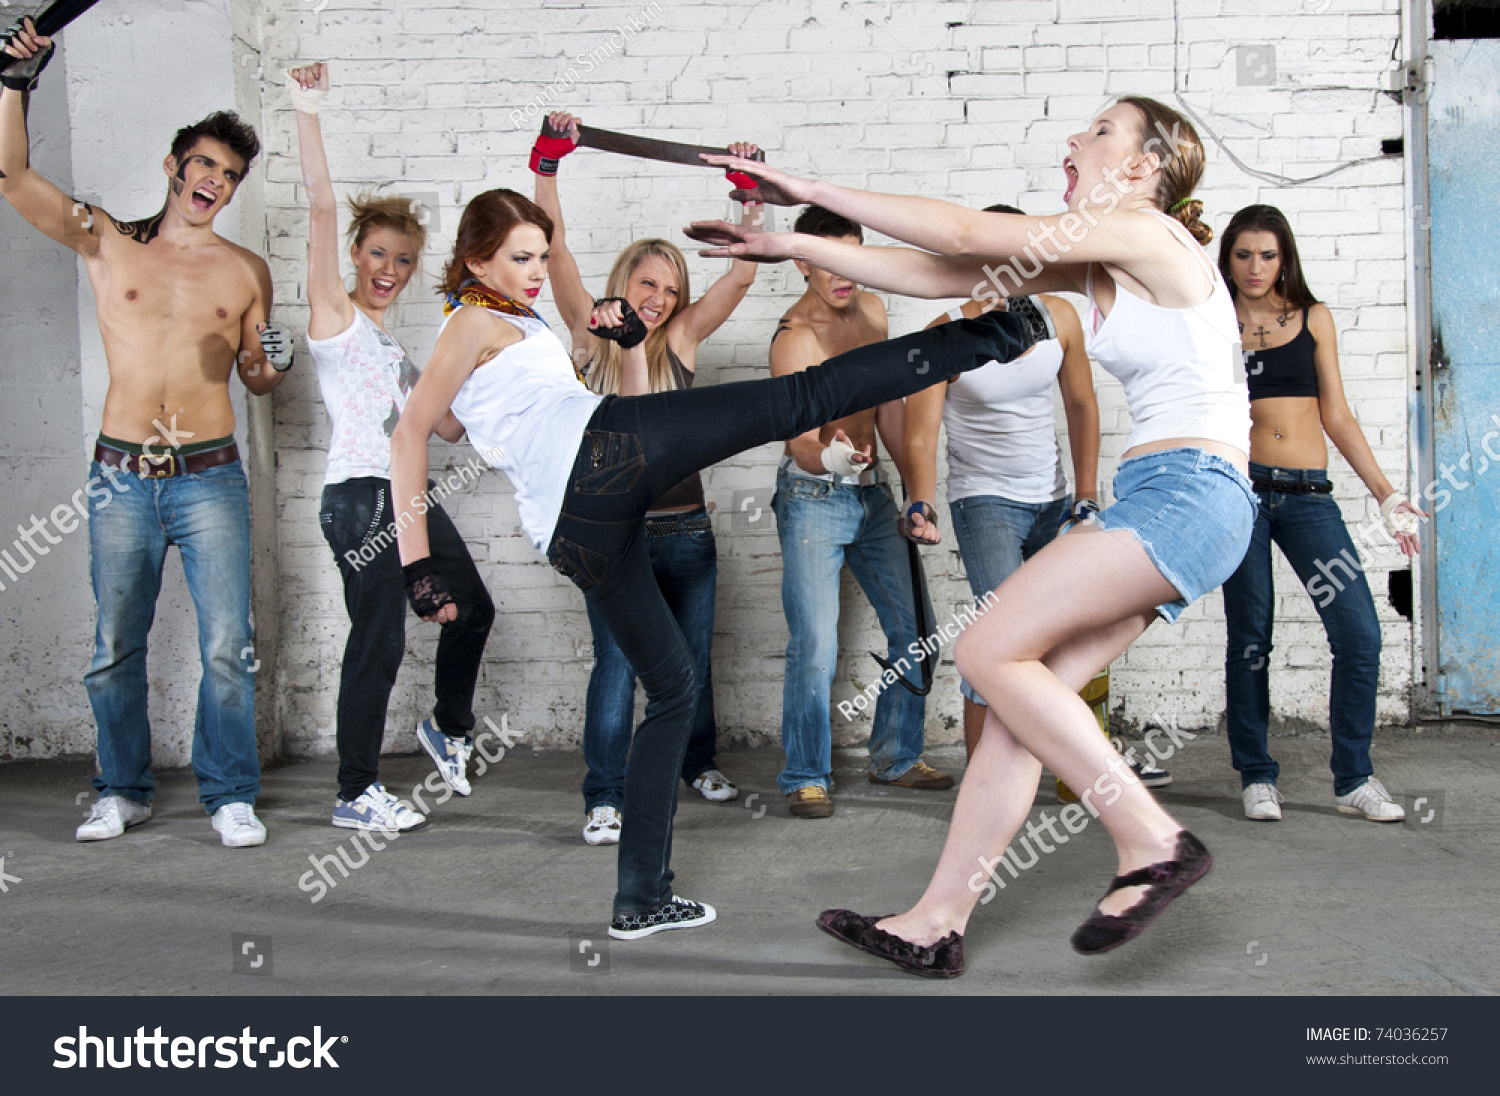 girl fight on street